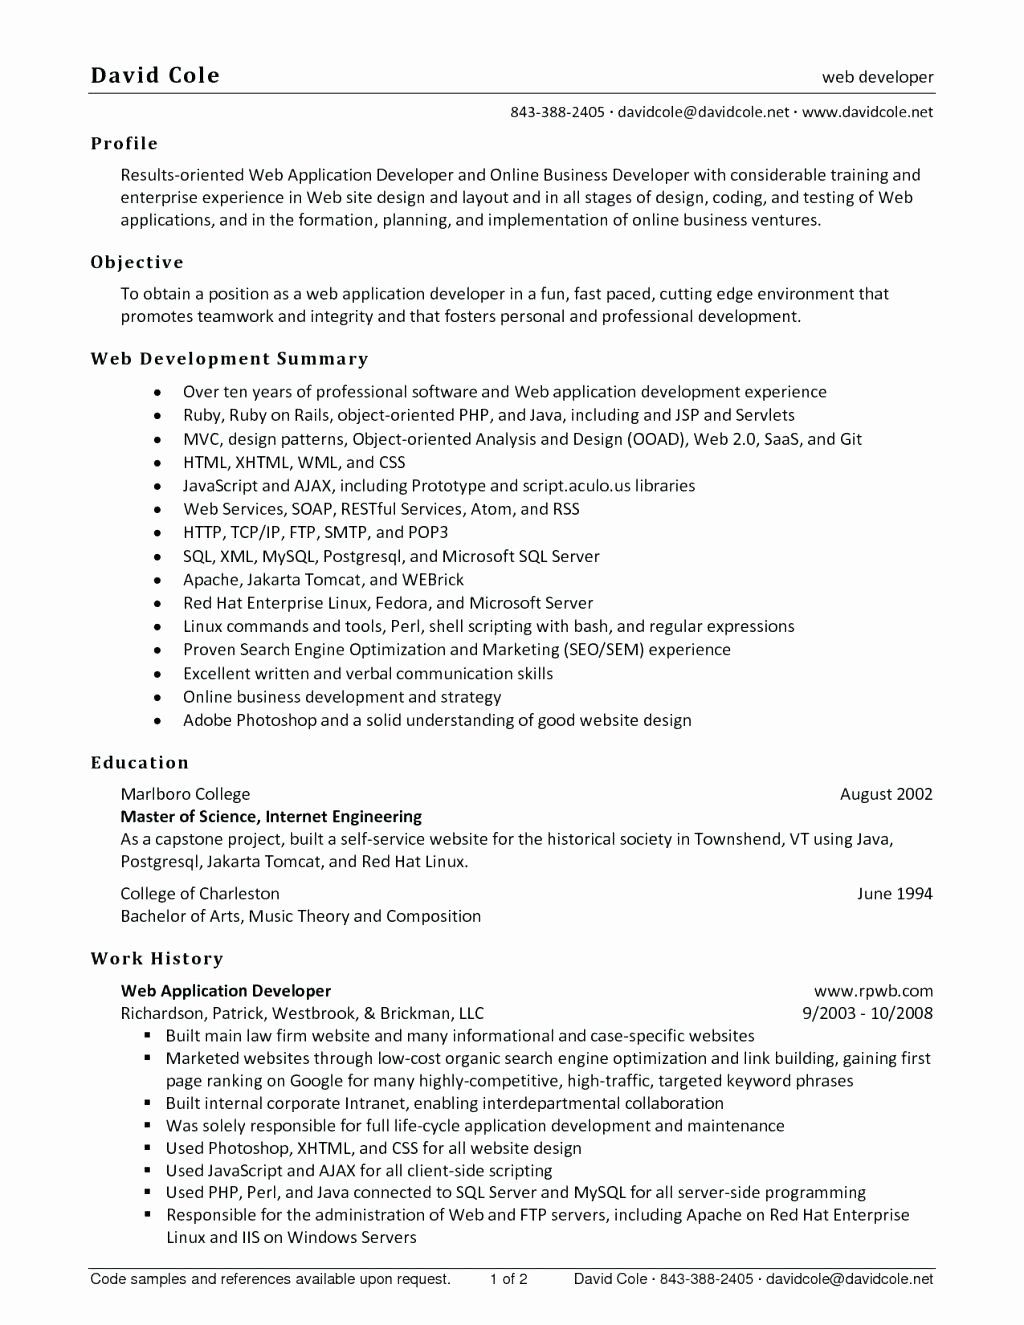 Cover Letter For Java Developer New 10 Web Developer Cover Letter Sample Web Developer Resume Web Designer Resume Resume Template Examples